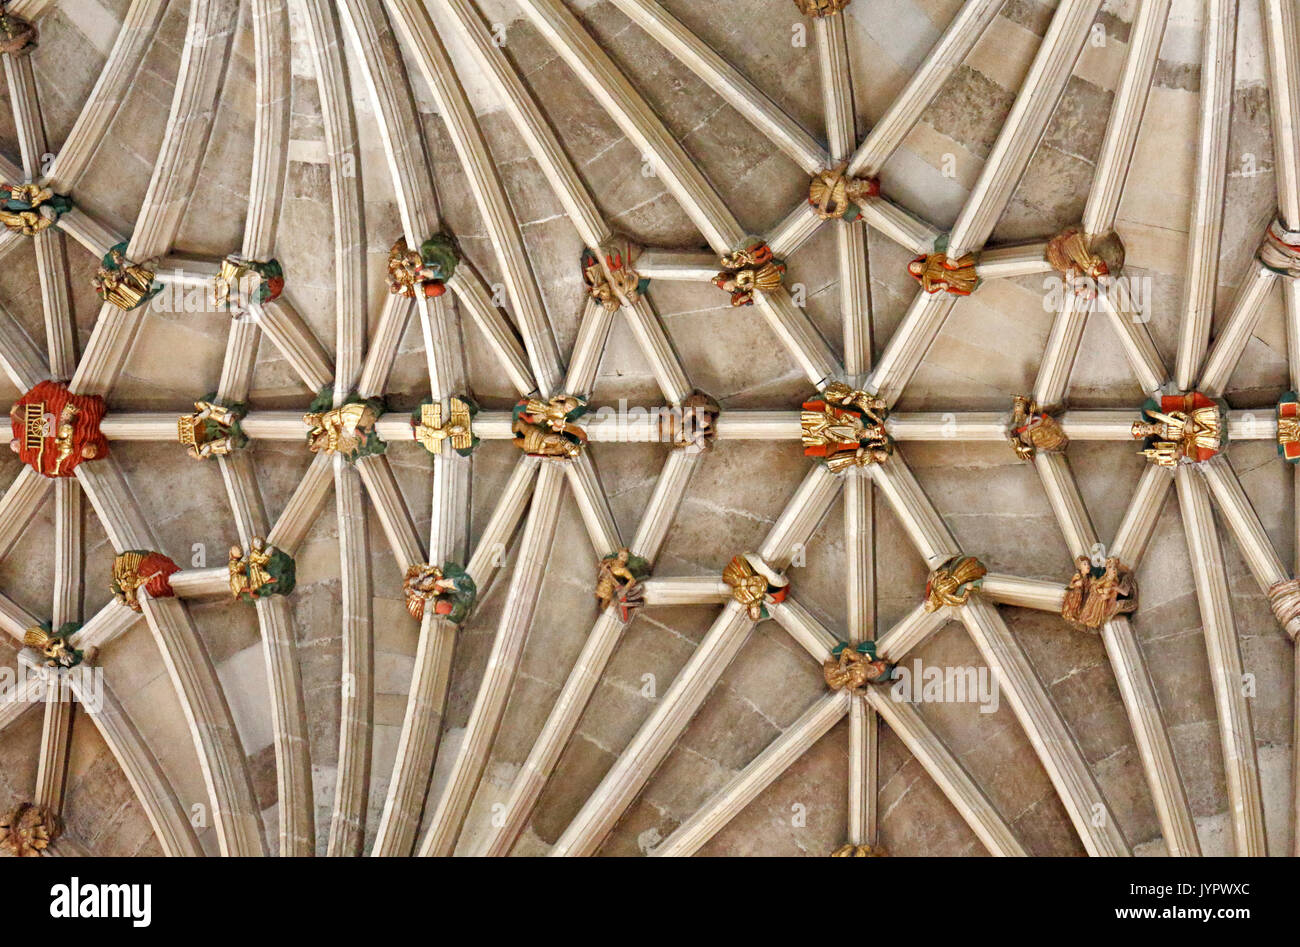 A view of the vaulting and bosses on the ceiling of the nave in the Anglican Cathedral in the City of Norwich, Norfolk, England, United Kingdom. - Stock Image